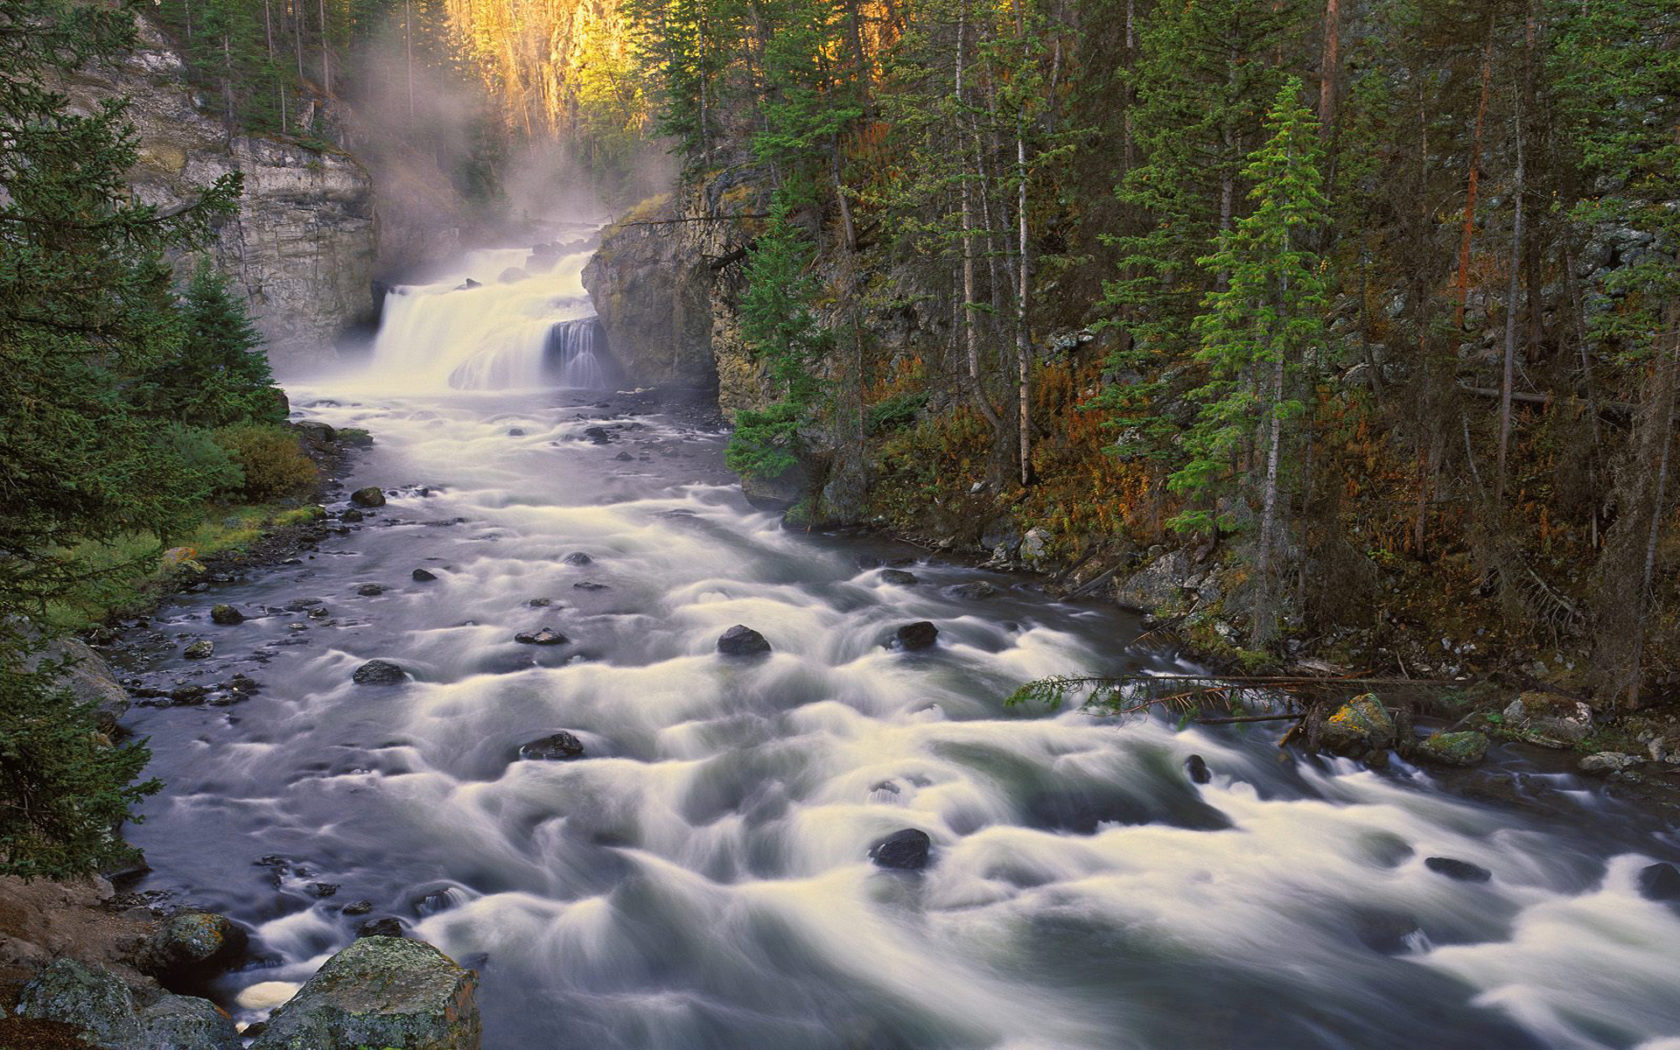 Niagara Falls Wallpaper For Ipad Firehole Falls Is A Waterfall On The Firehole River In